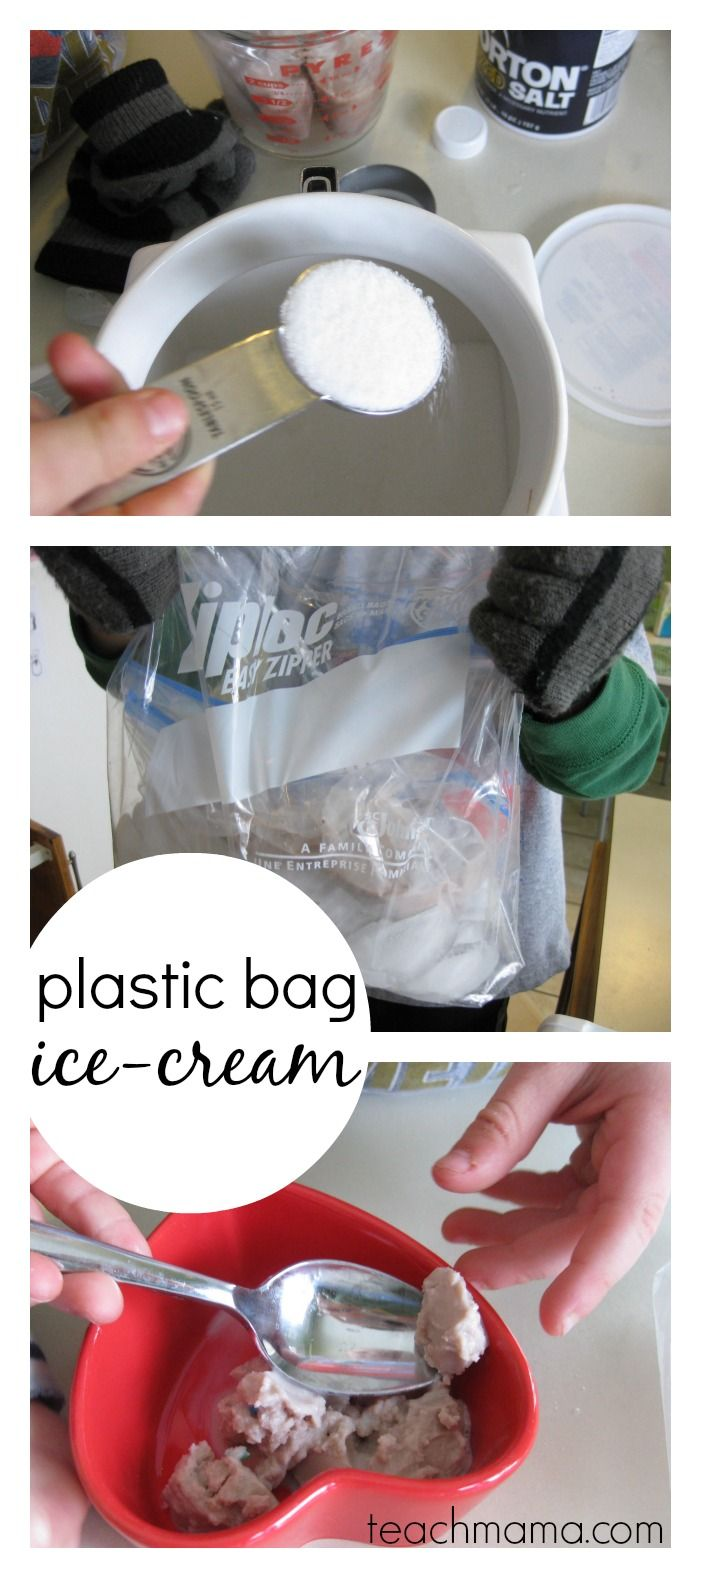 easy, homemade plastic bag ice-cream | teachmama.com | free printable kid-friendly recipe #weteach